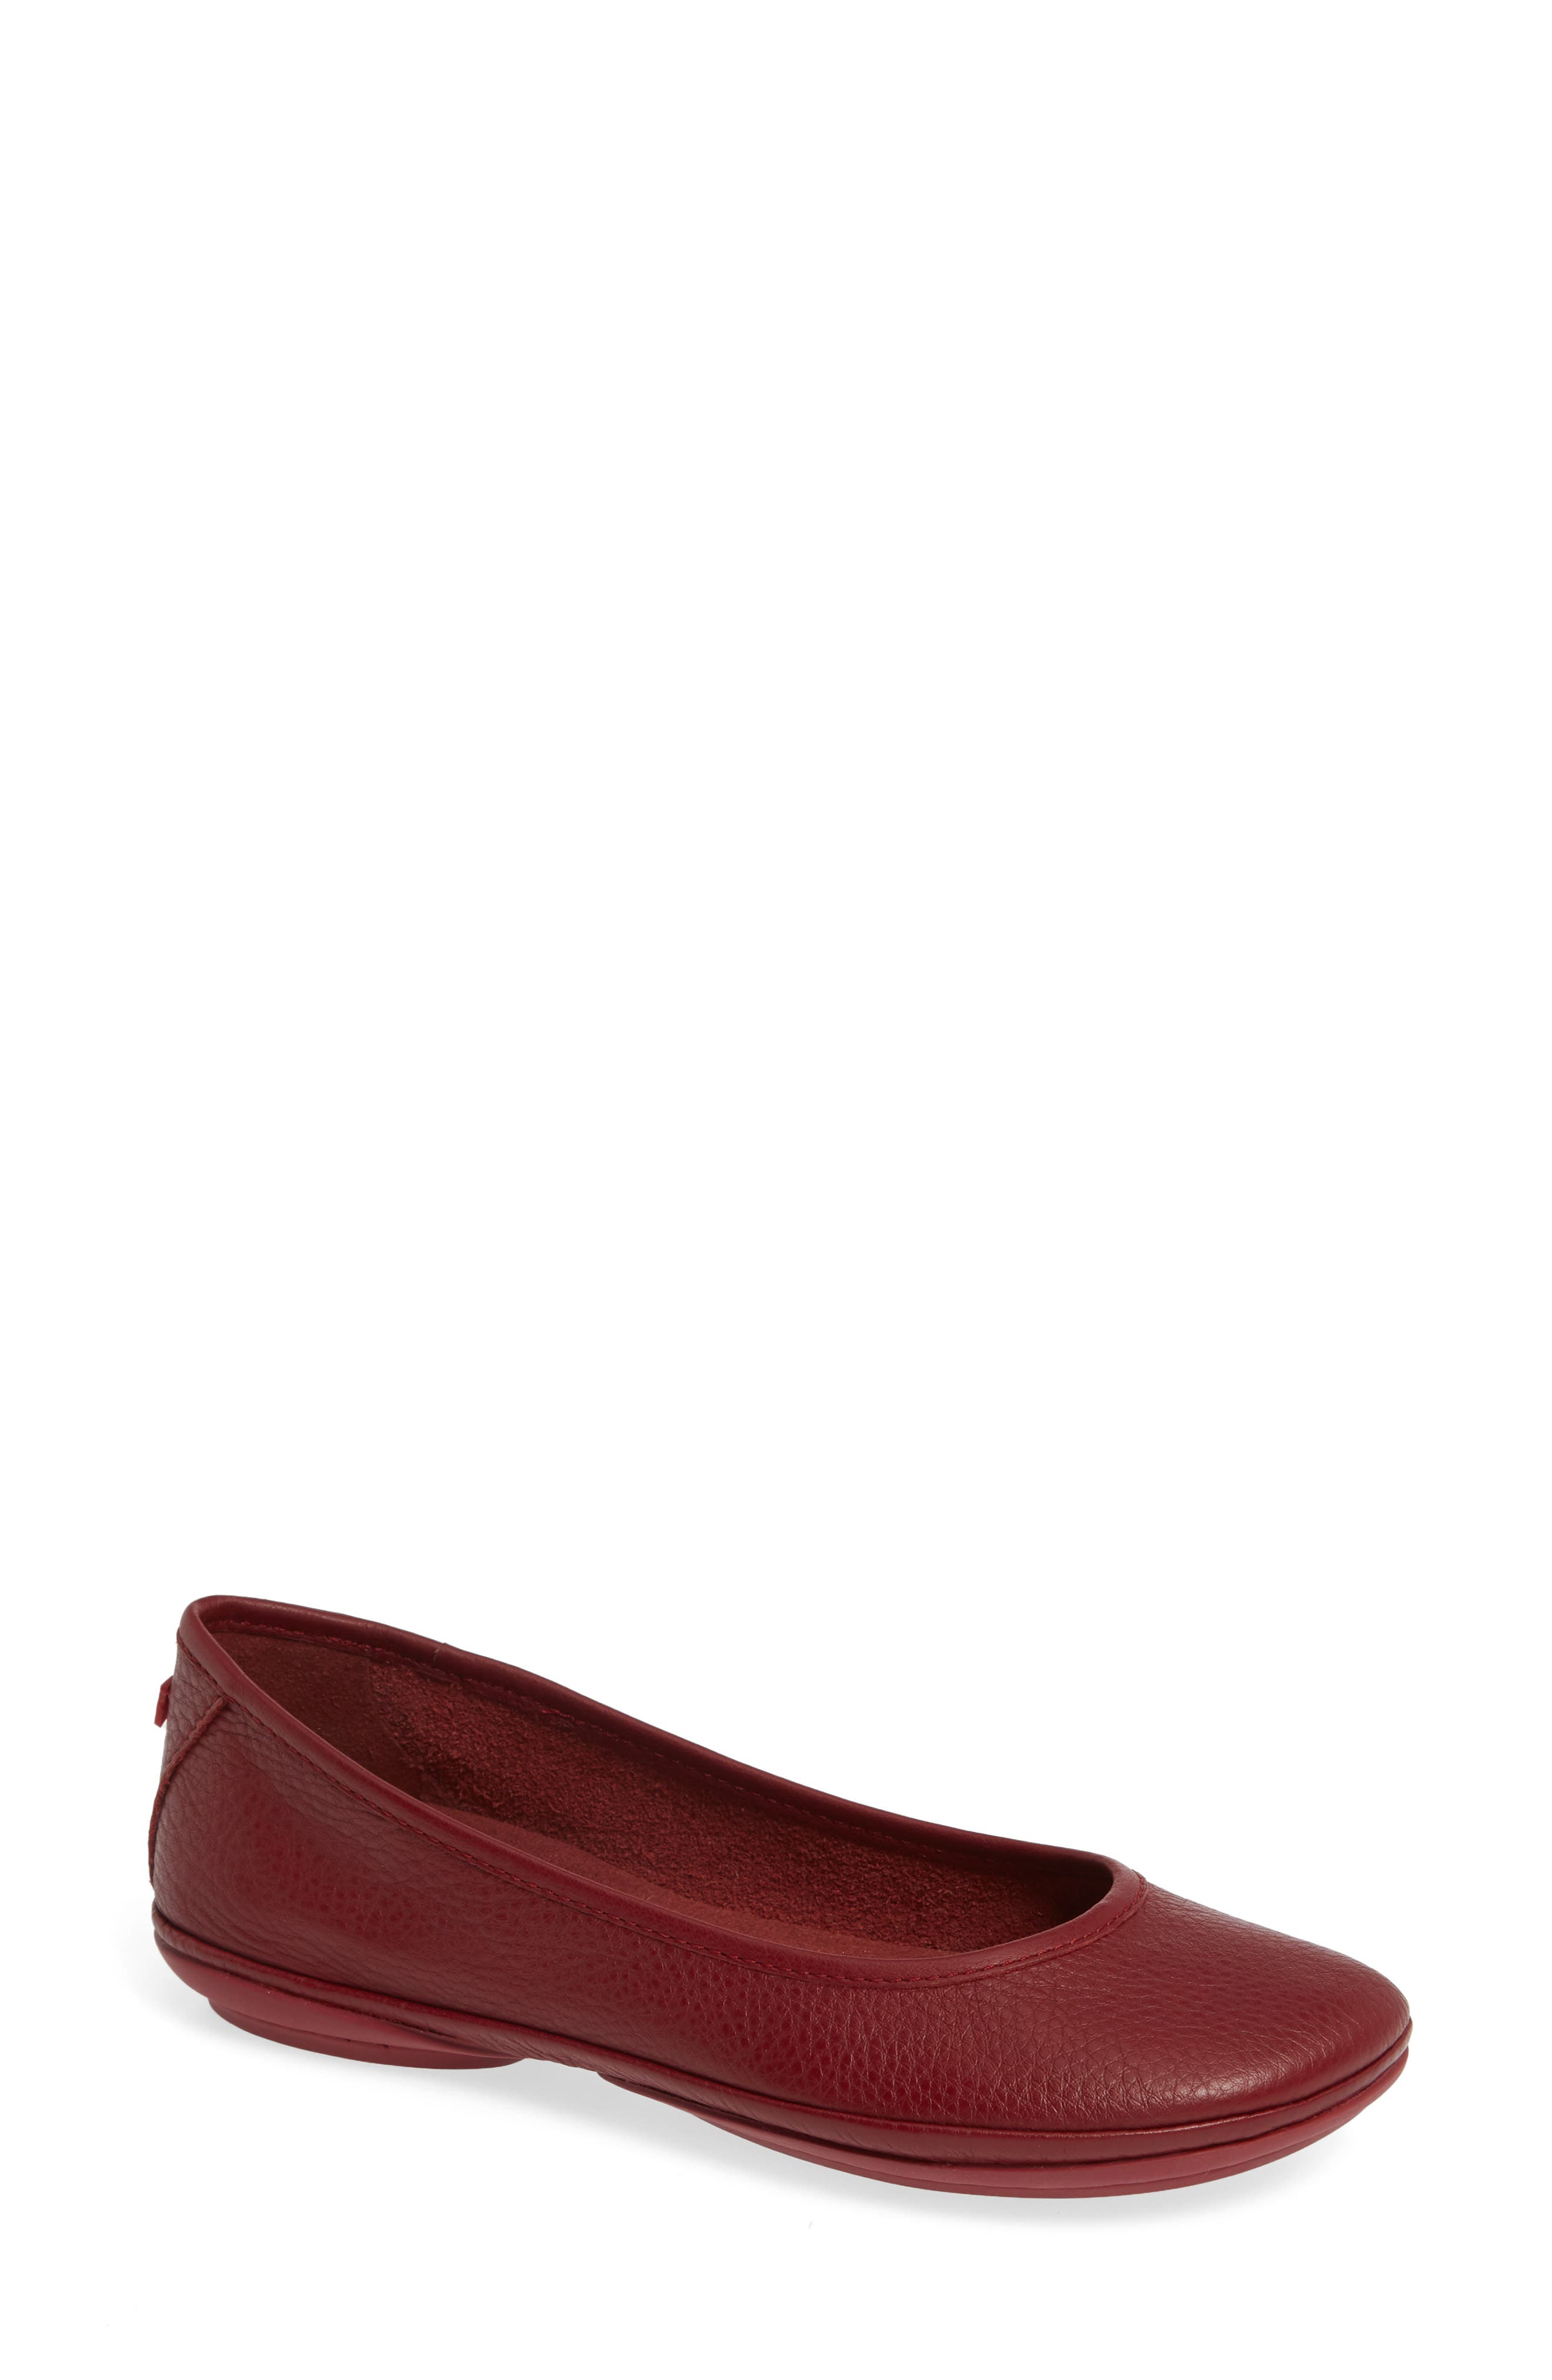 Right Nina Ballet Flat,                             Main thumbnail 1, color,                             RED LEATHER